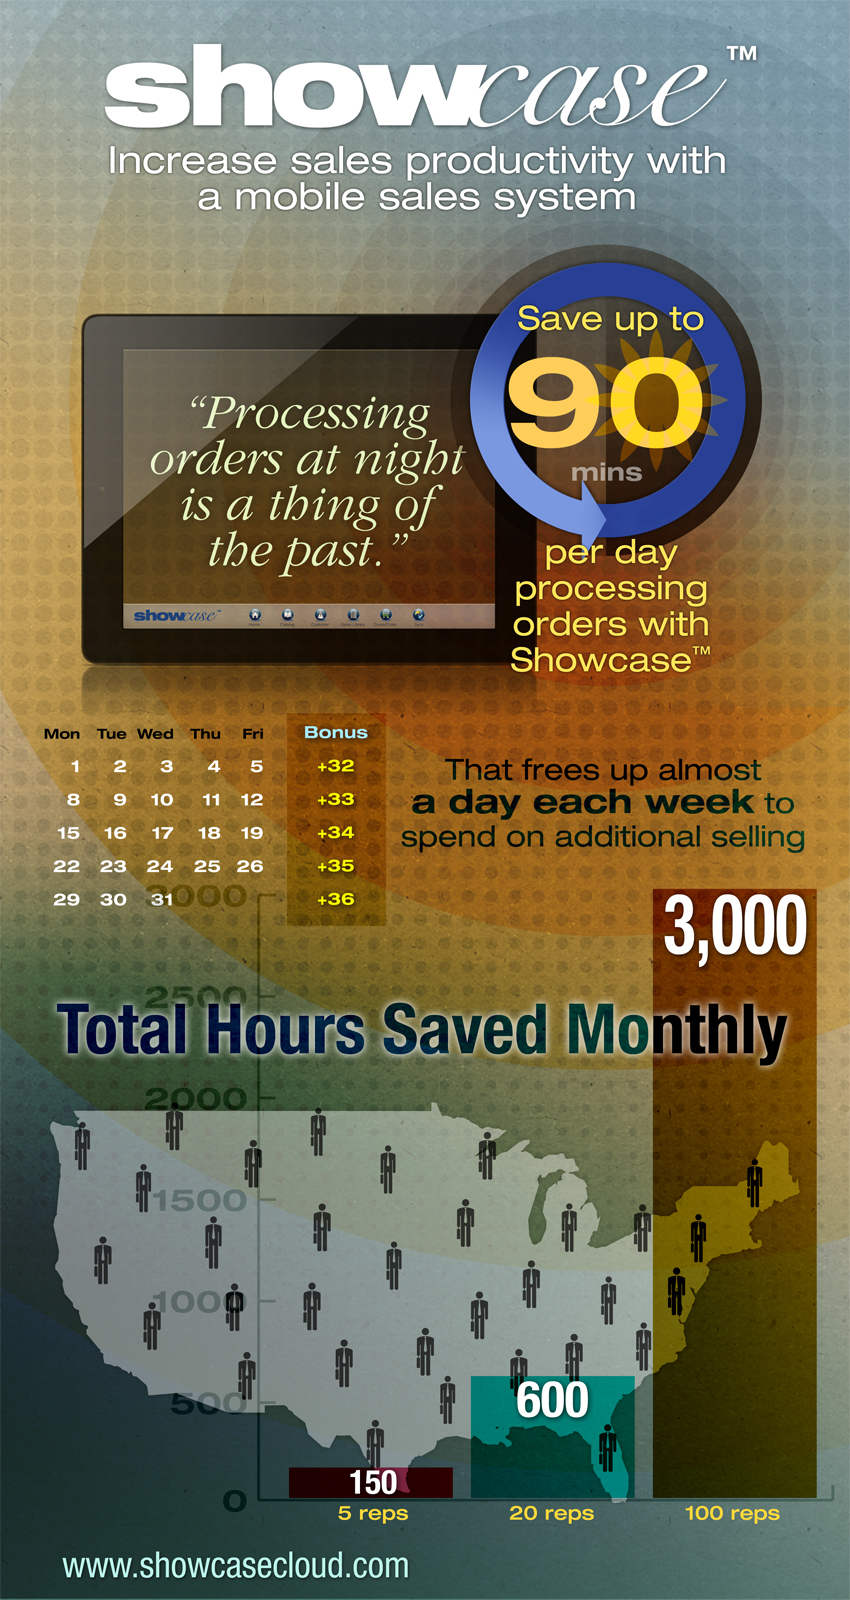 Logic-Solutions-Showcase-Mobile-Sales-System-App-infographic